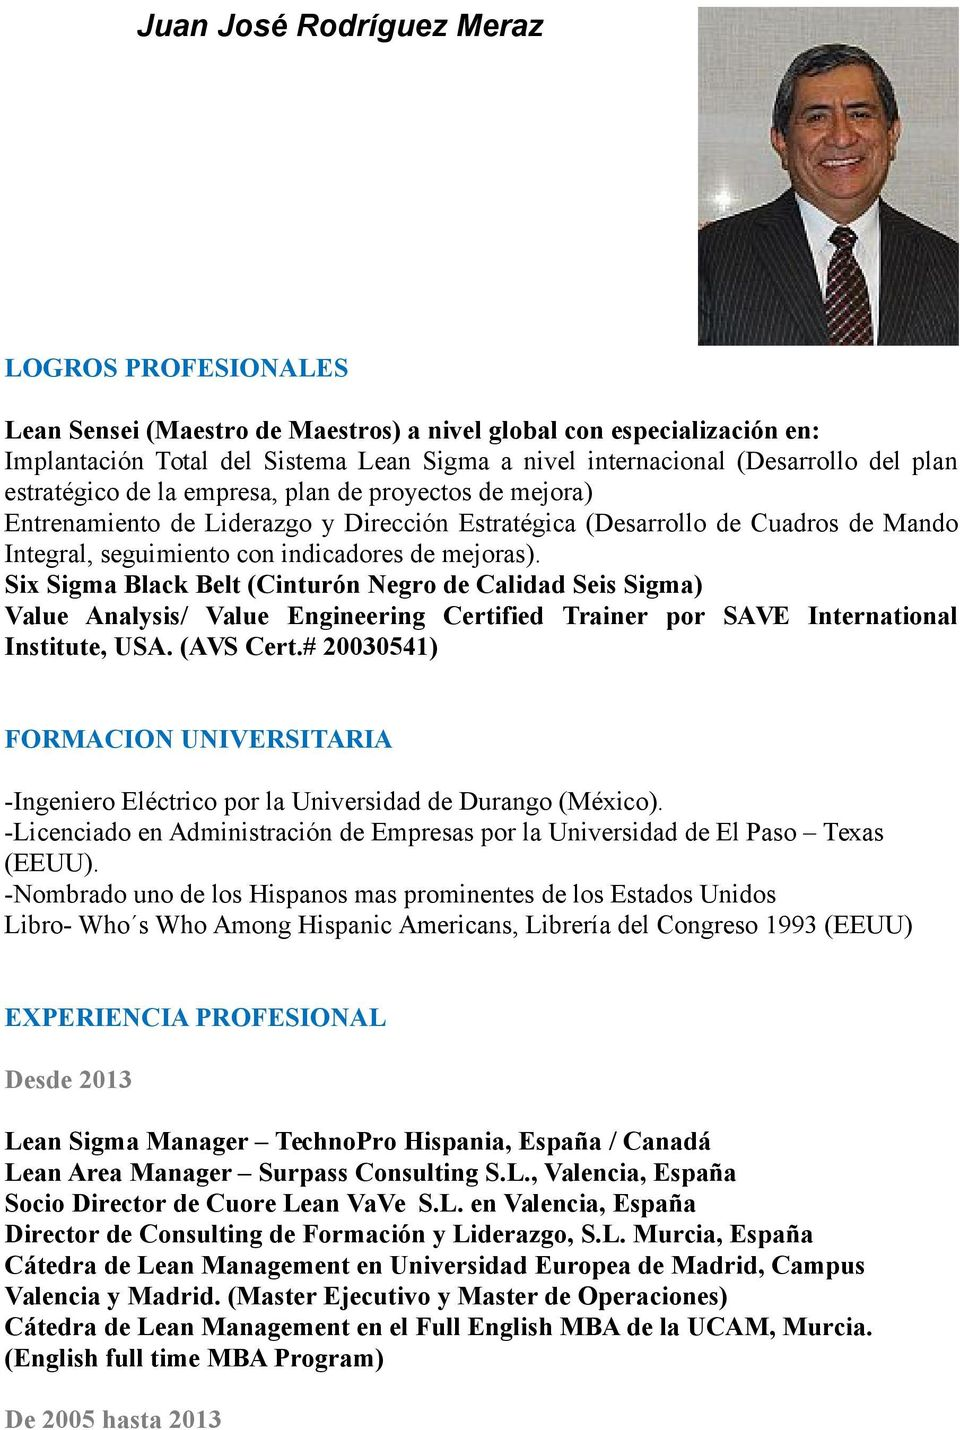 Six Sigma Black Belt (Cinturón Negro de Calidad Seis Sigma) Value Analysis/ Value Engineering Certified Trainer por SAVE International Institute, USA. (AVS Cert.